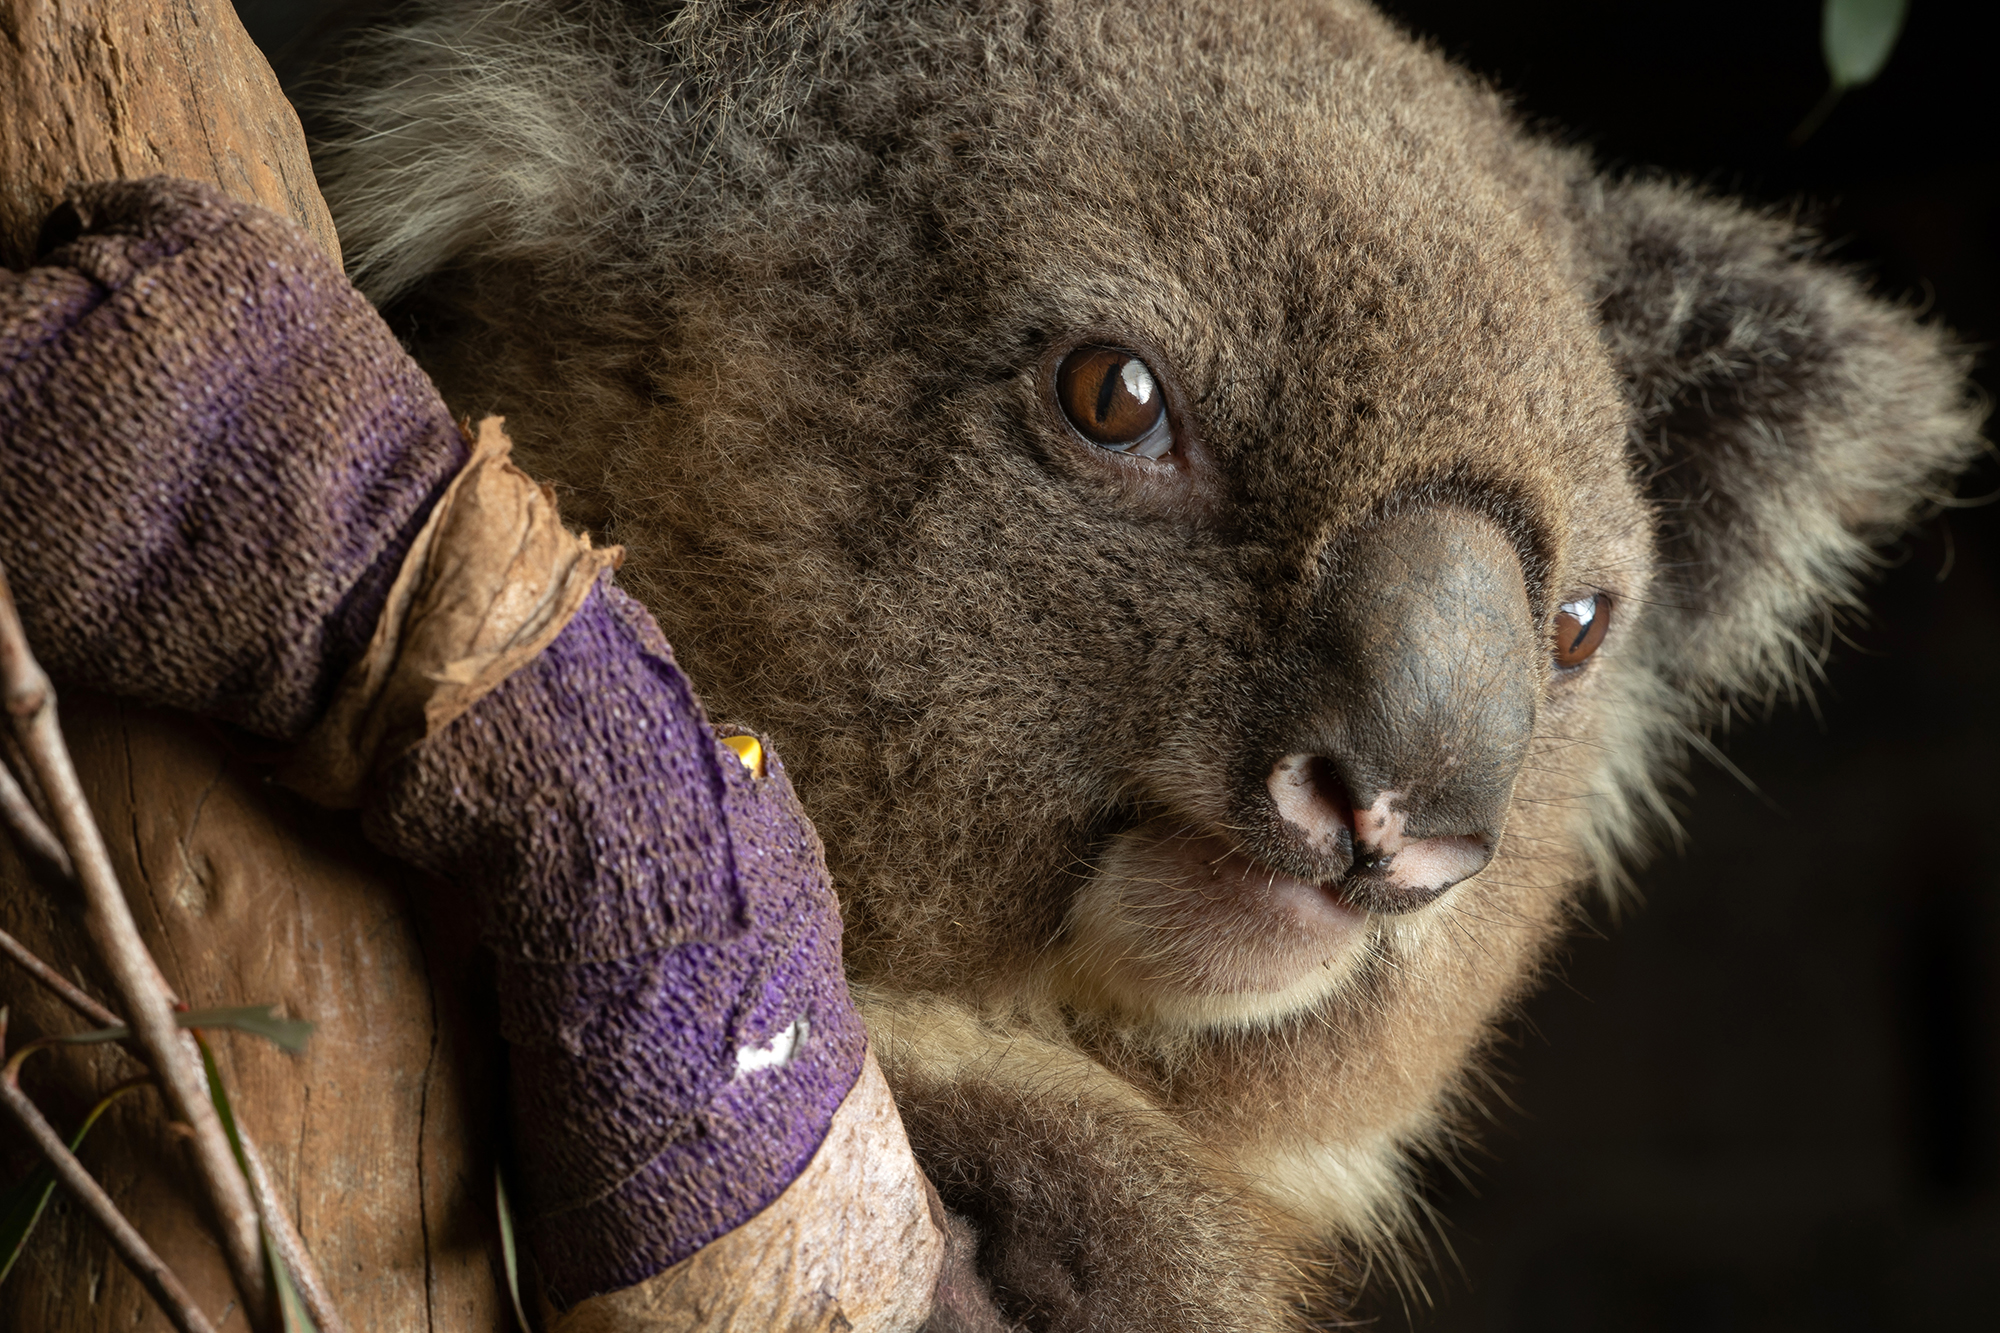 Koala populations are in decline due to increased human impacts on nature